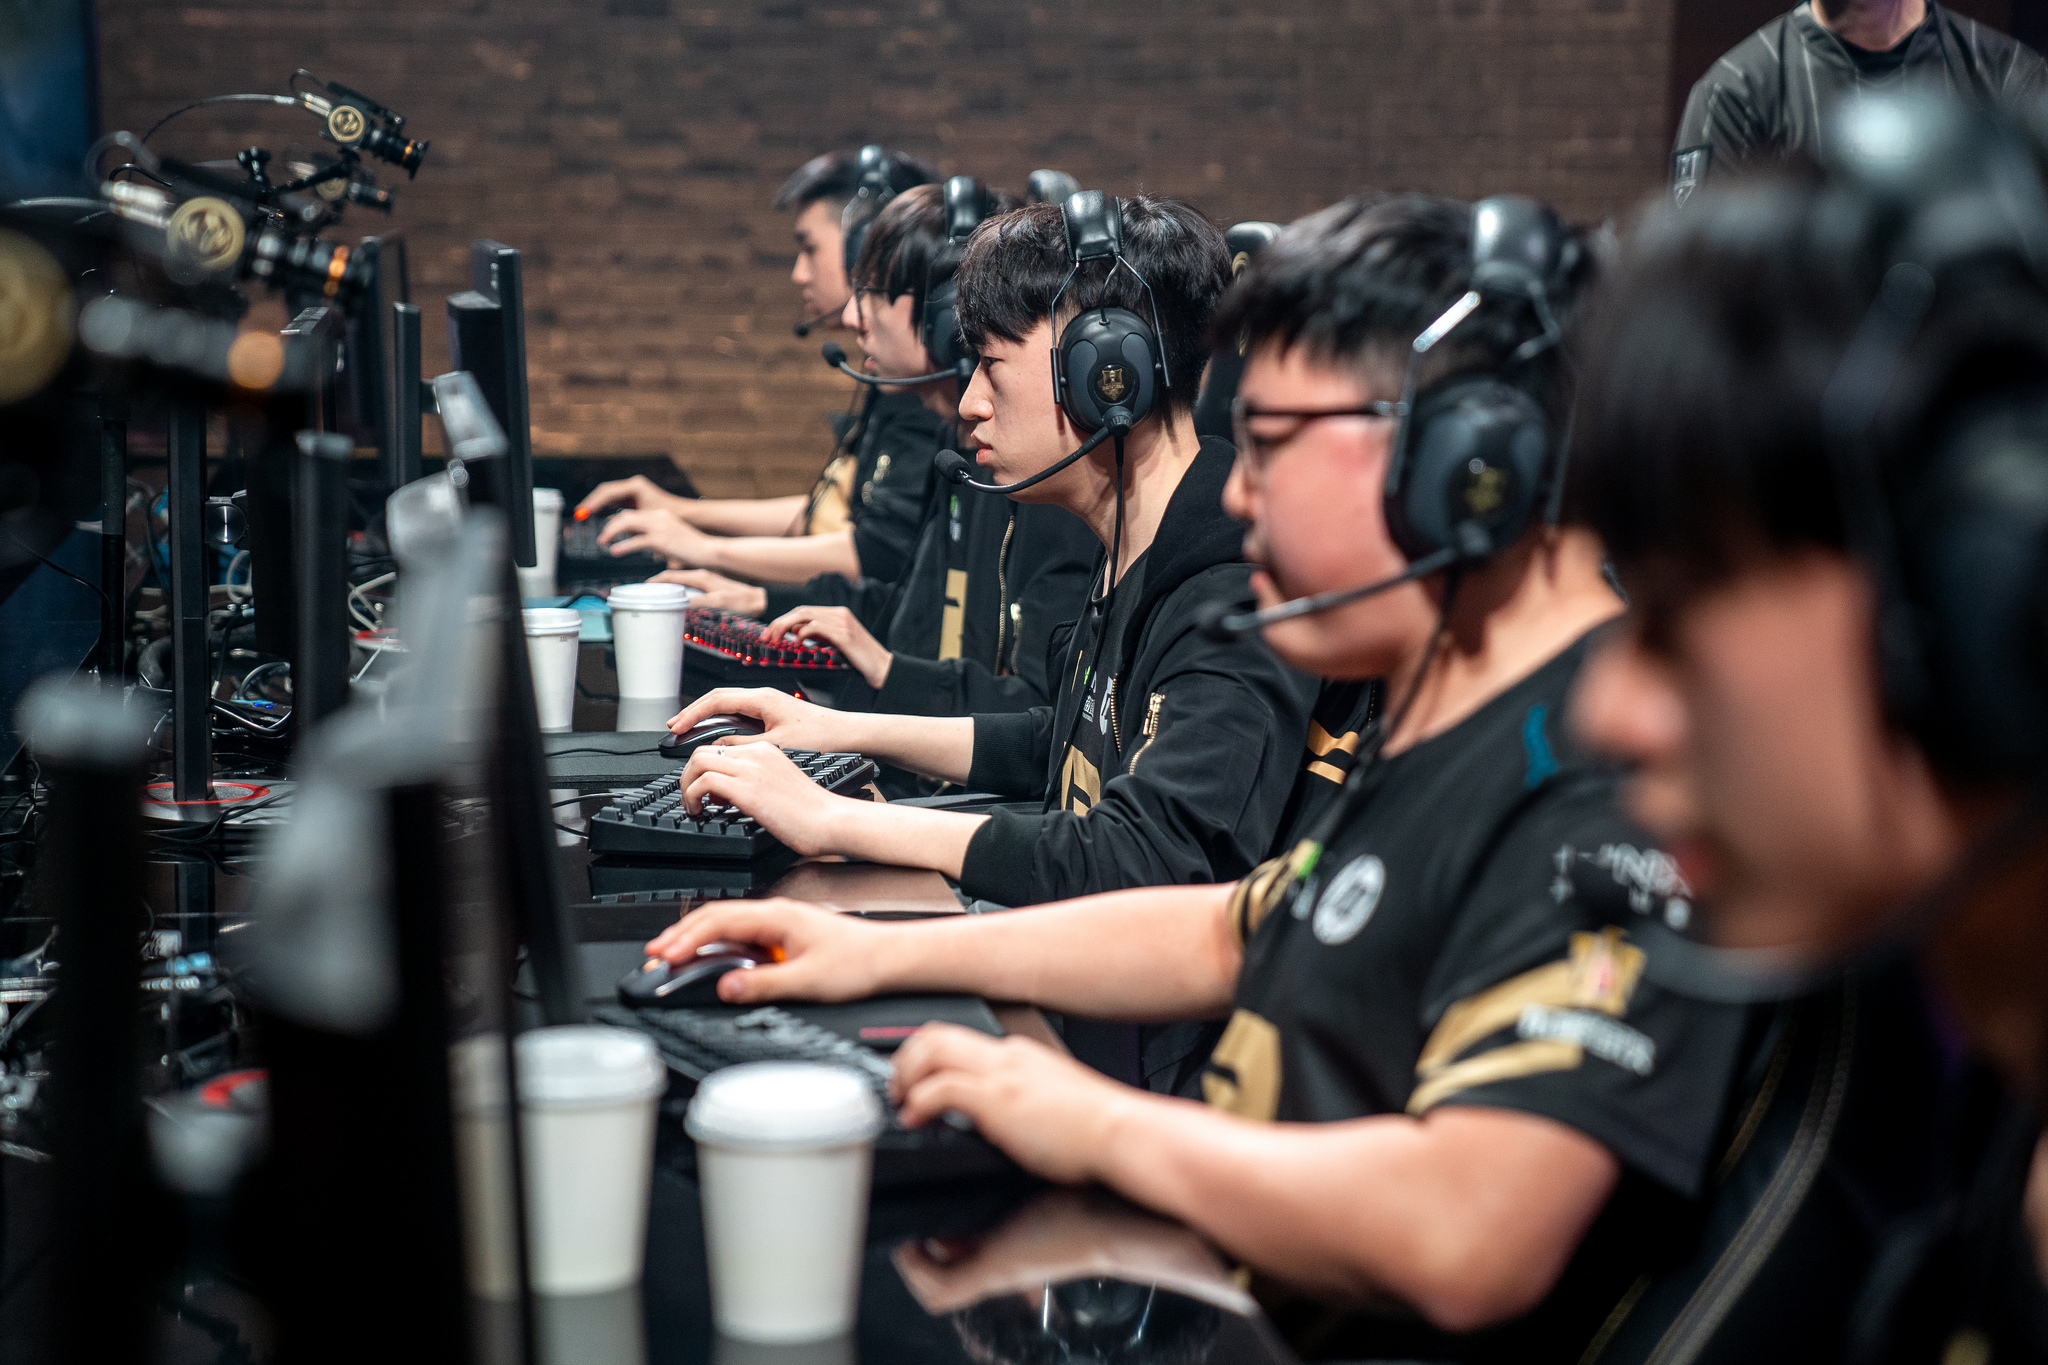 RNG struggle against the Western teams on day 3 of MSI